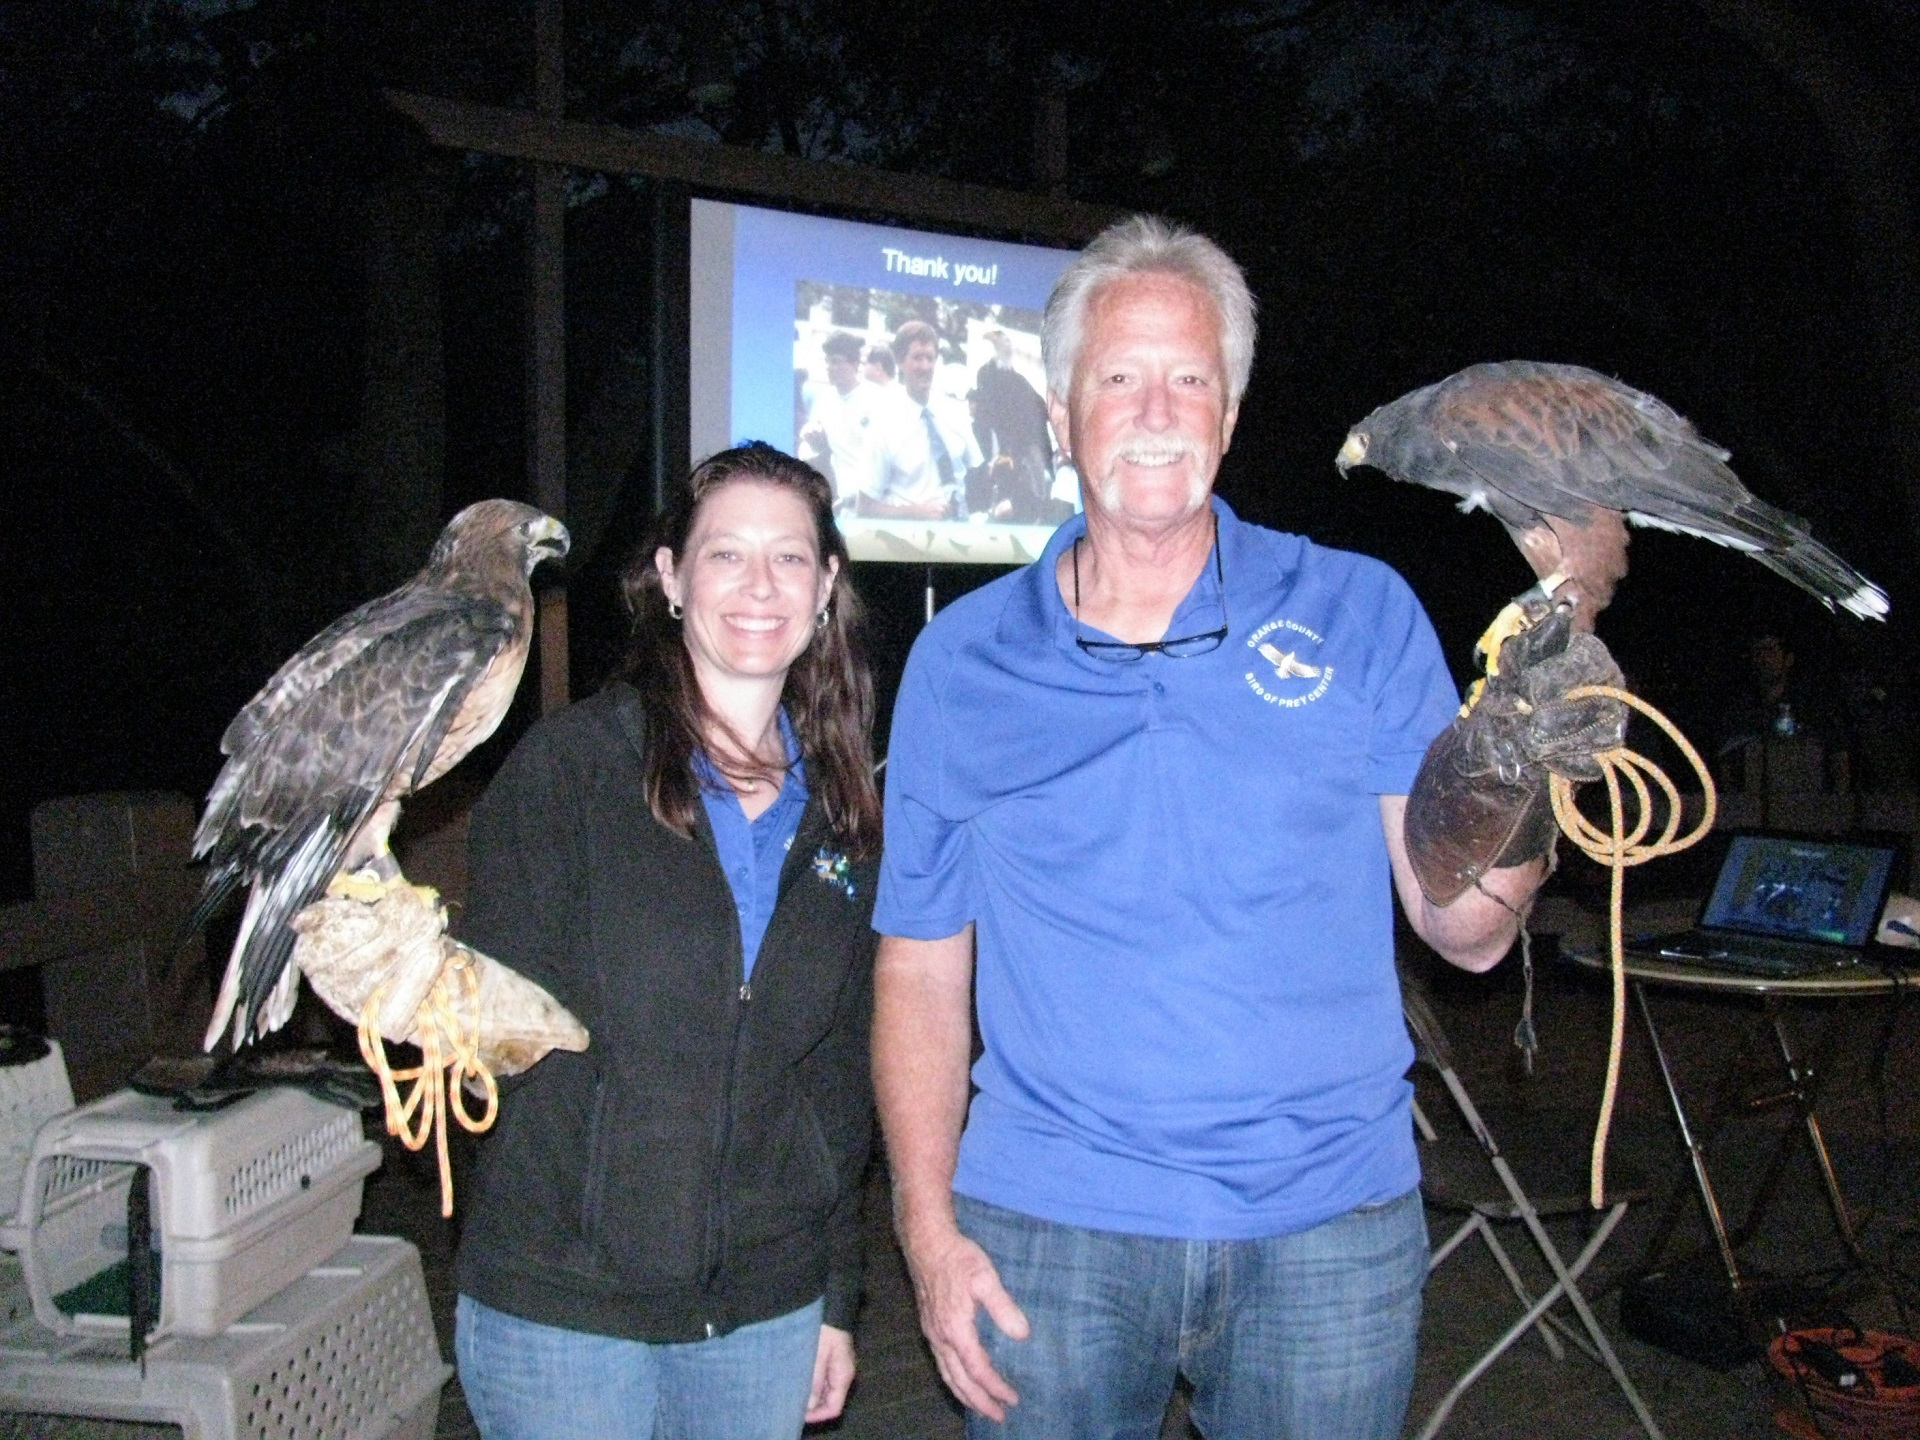 Man and woman hold large birds